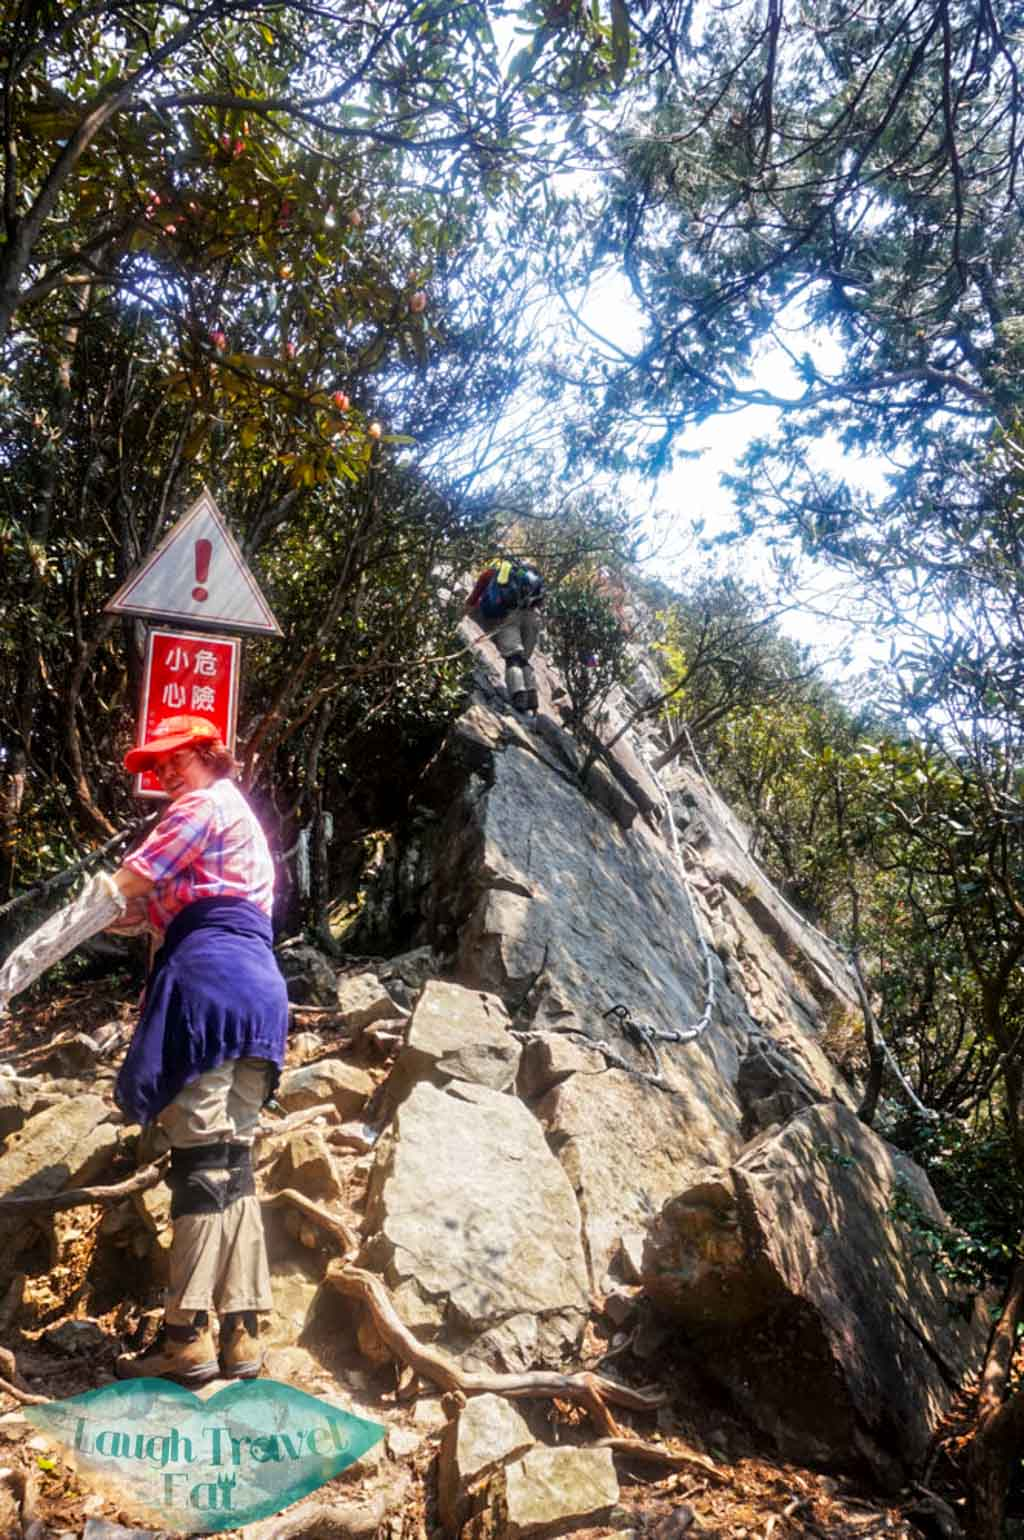 Change from forest trail to rock trail up to Yuan Zui Mountain in Dasyueshan National Forest Recreational Area, Taichung - Laugh Travel Eat